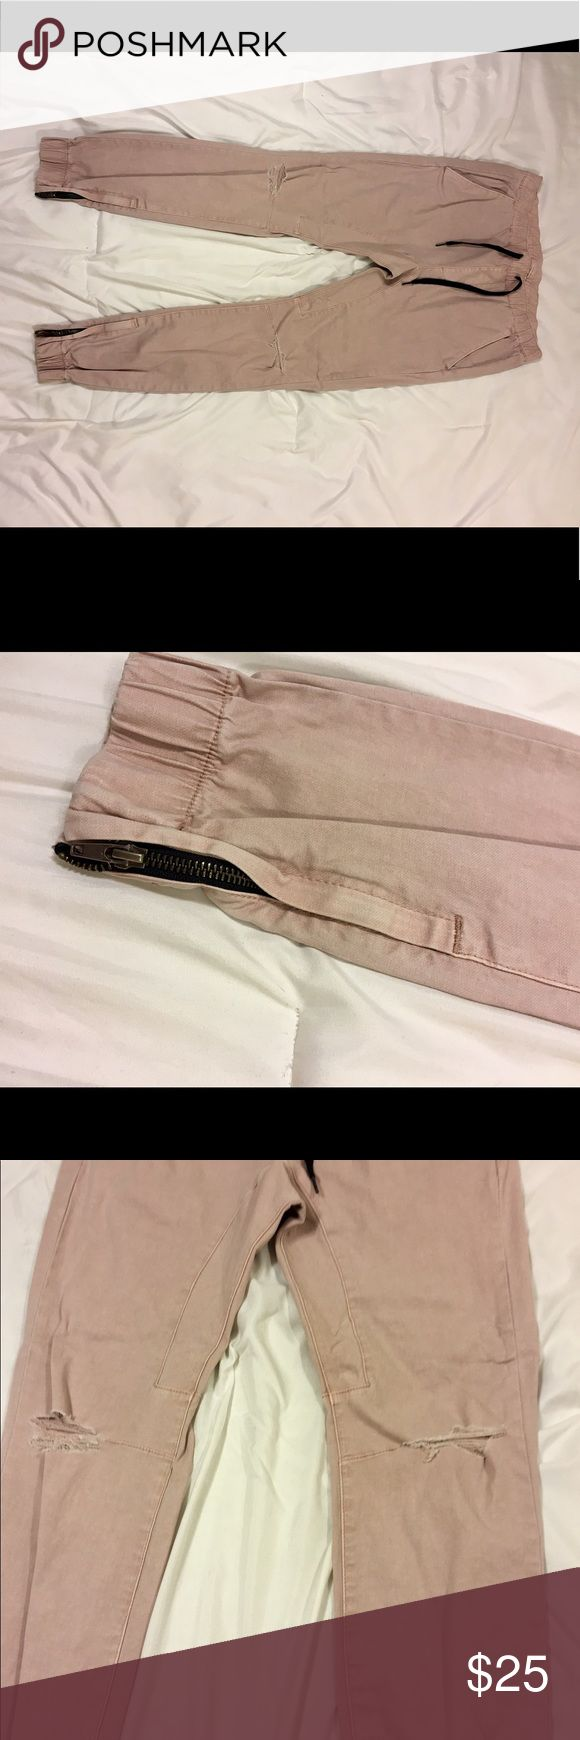 Men's Pacsun distressed joggers 〰size small, skinny fit excellent condition                                          〰factory distressing on knees.                           〰light pink color, perfect for monochrome spring outfits.                                                                    .                                  〰zipper details at the bottom of the legs           〰98% cotton, 2% spandex.                                 〰offers are welcomed…